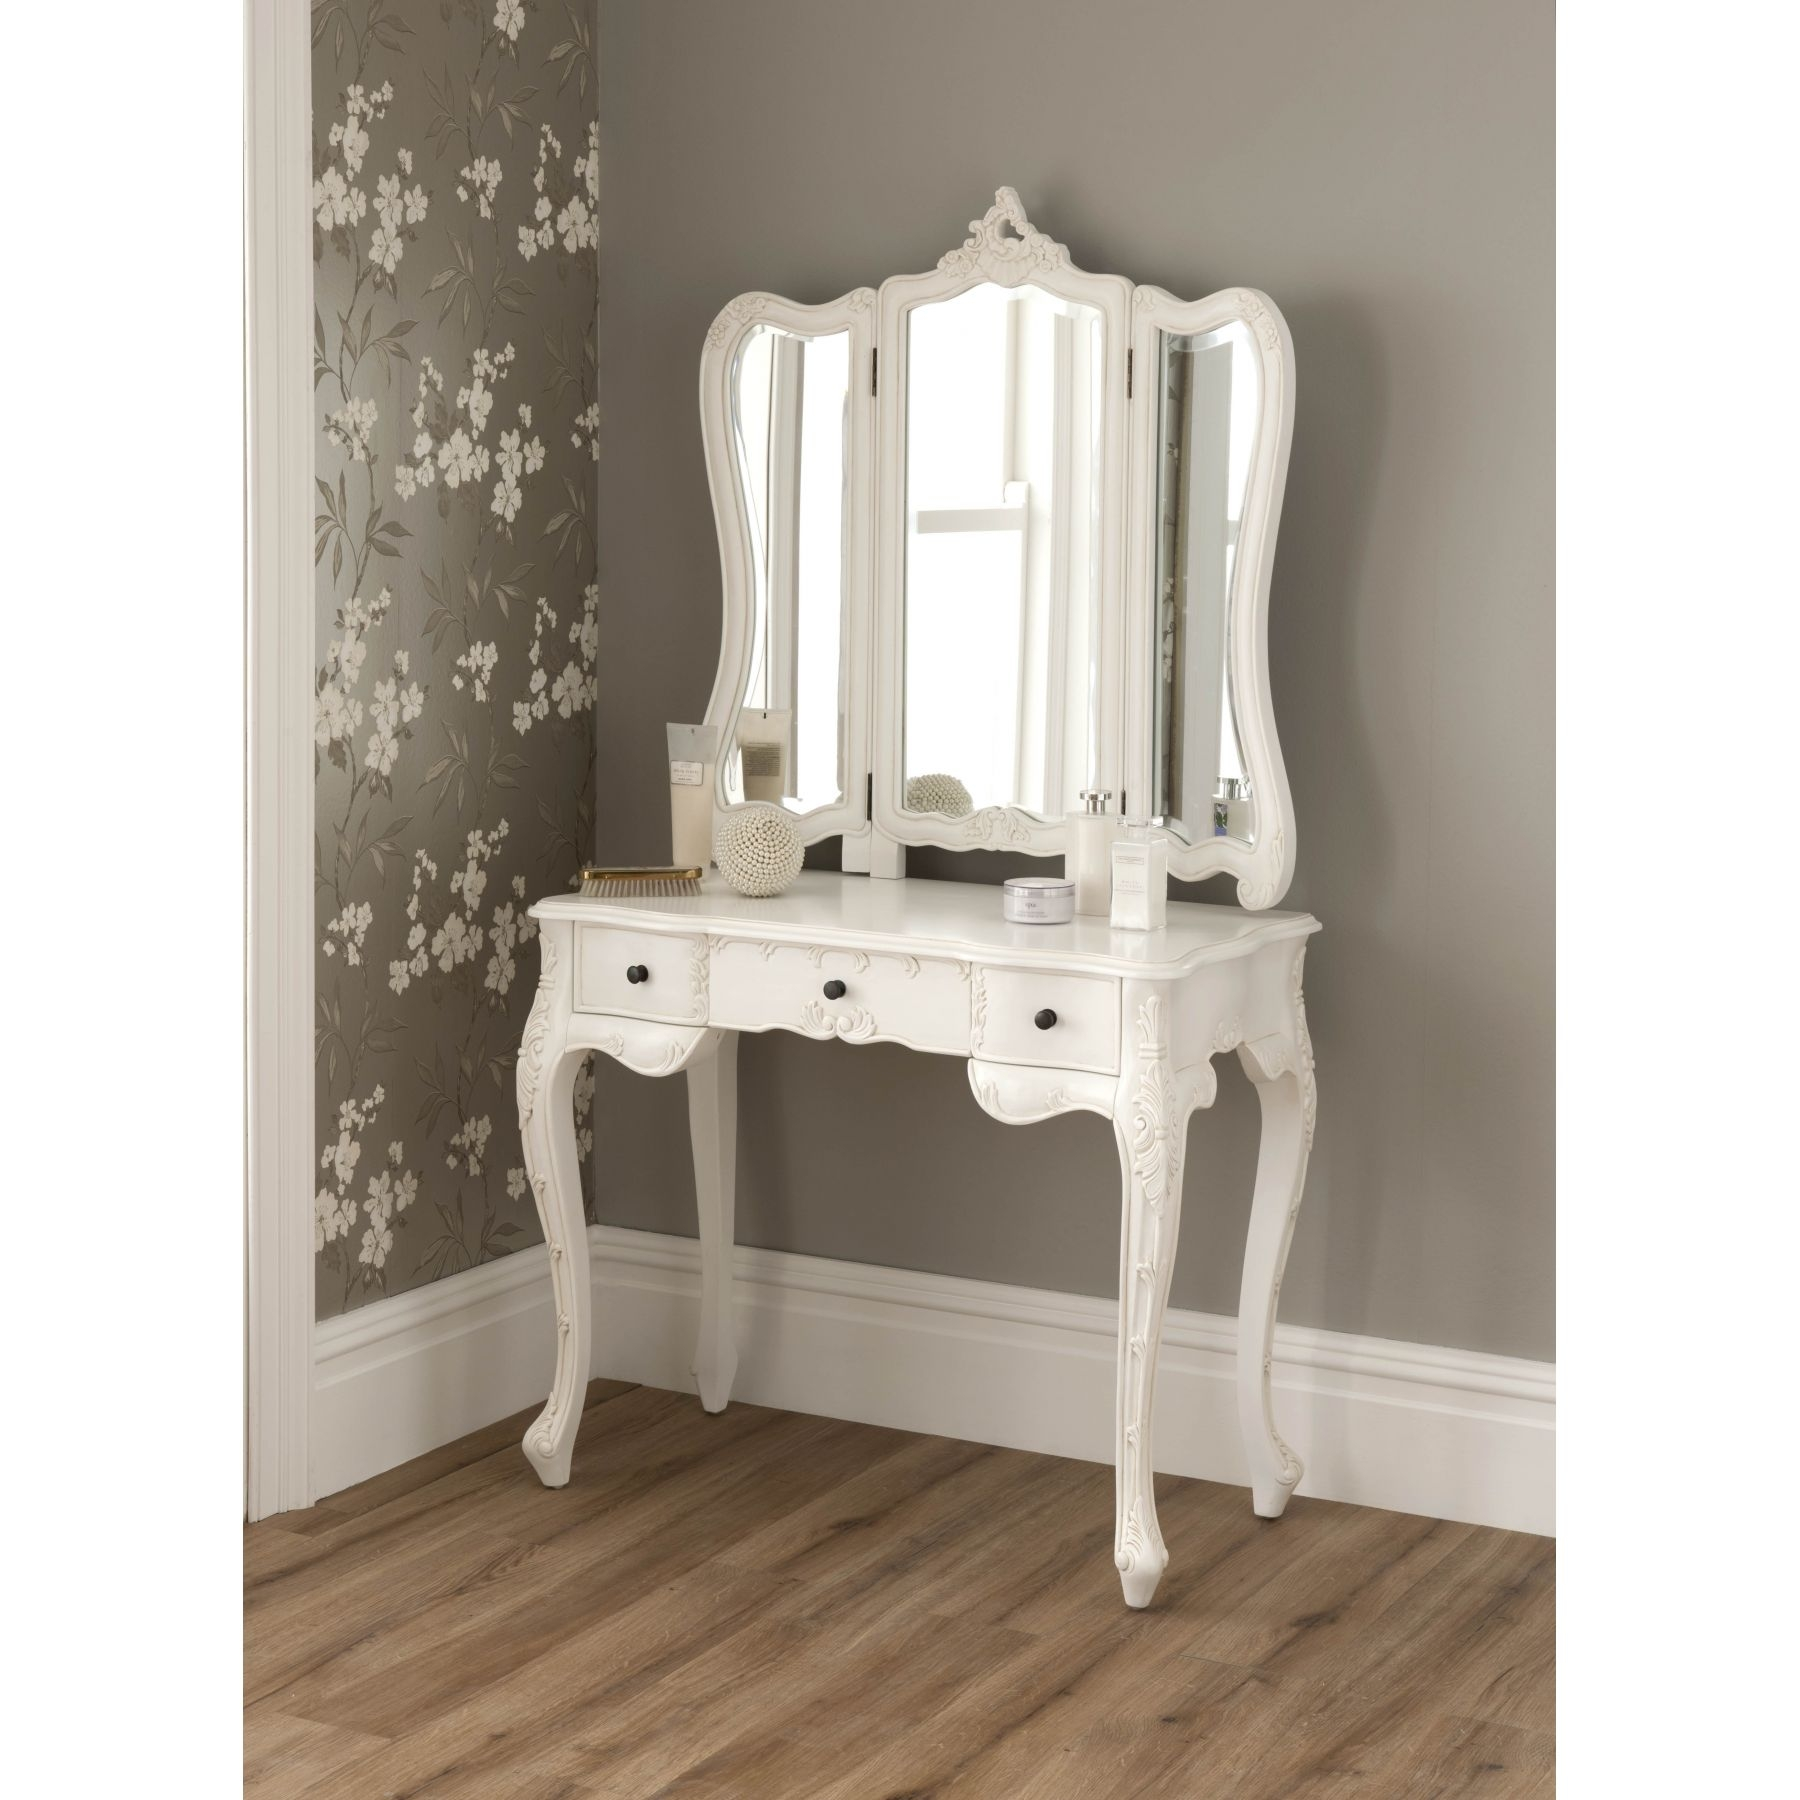 La Rochelle Antique French Dressing Table Shab Chic With Ornate Dressing Table Mirror (Image 6 of 15)